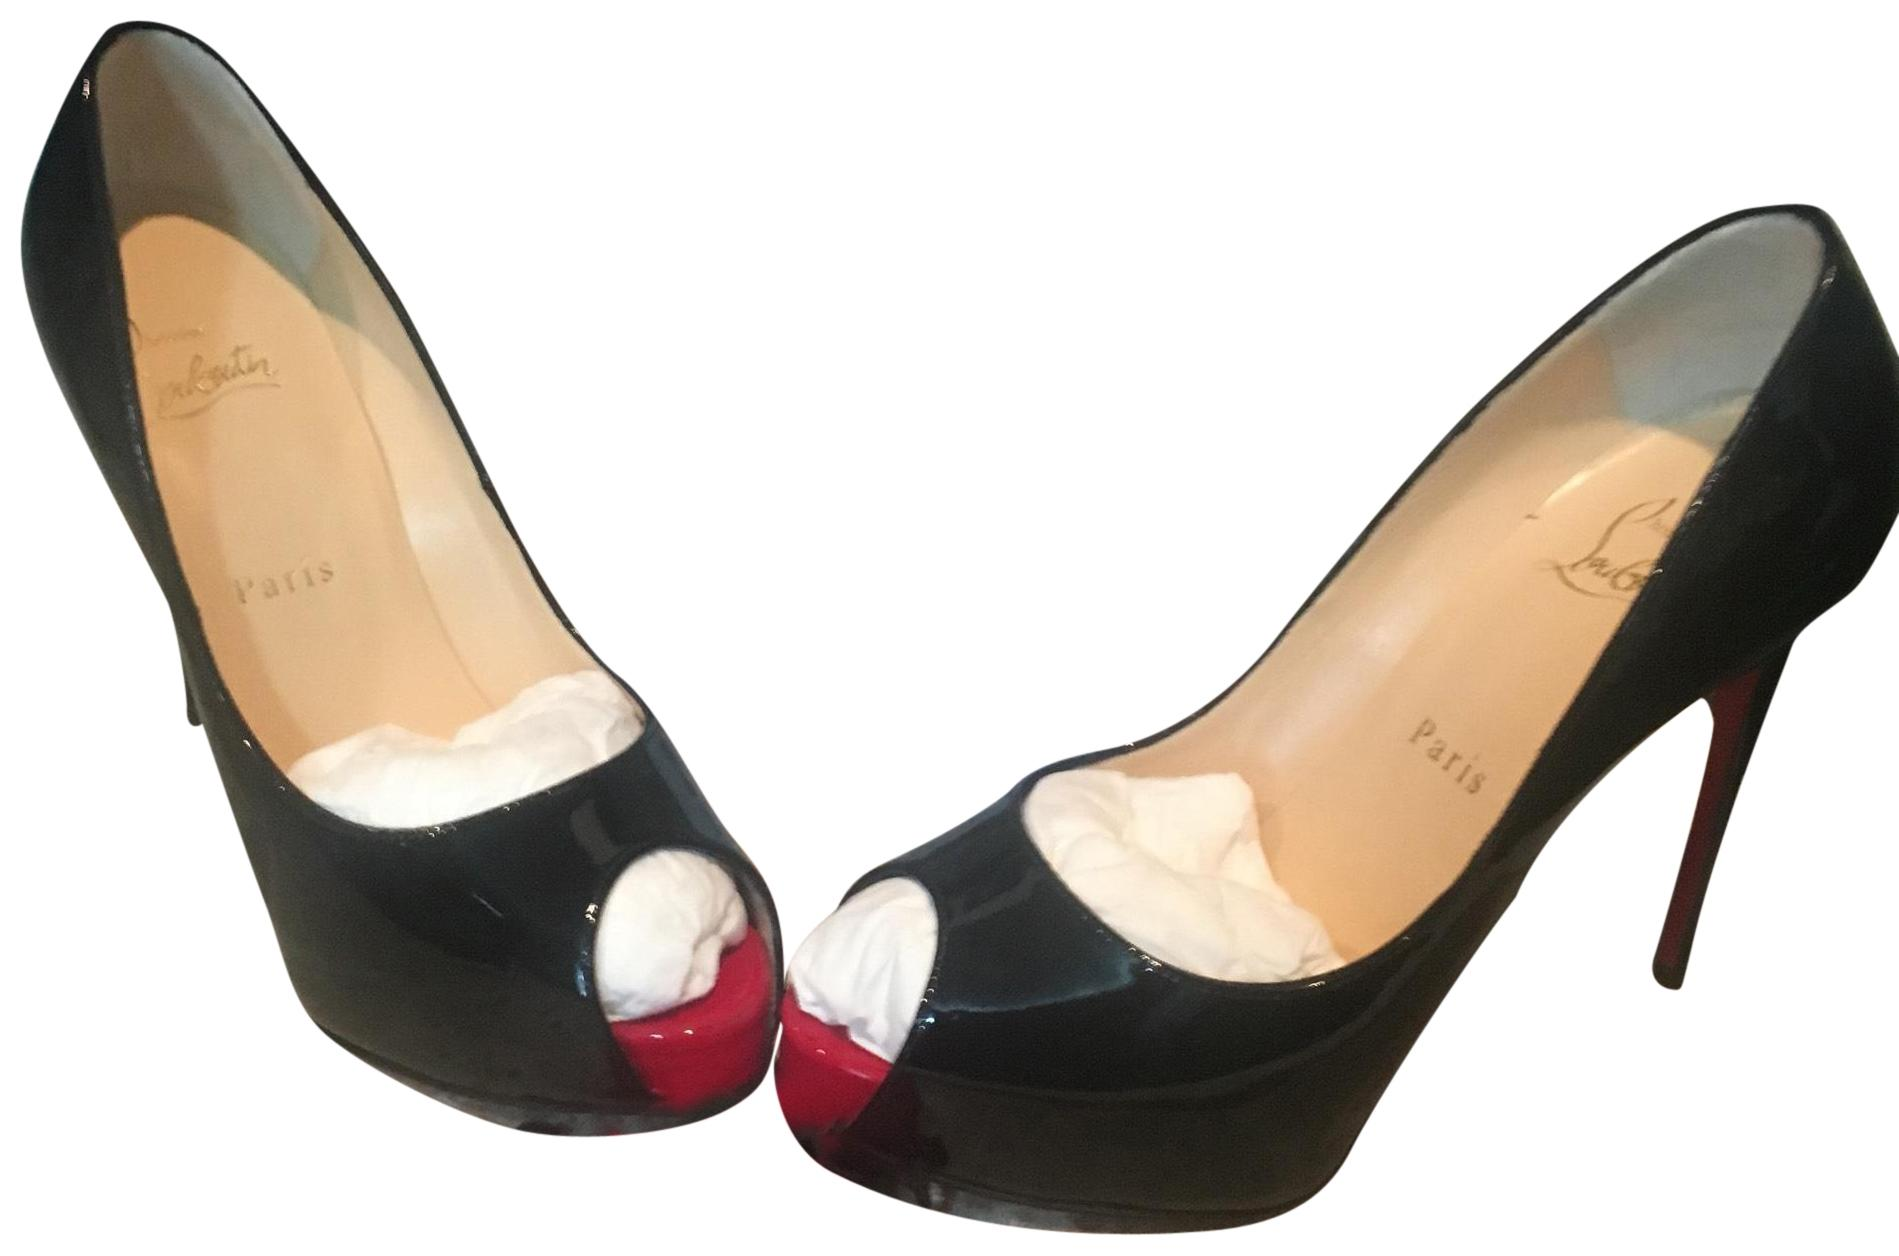 366394bf5354 Christian Louboutin Black Red Black Red Black Red New Very Prive Pumps Size